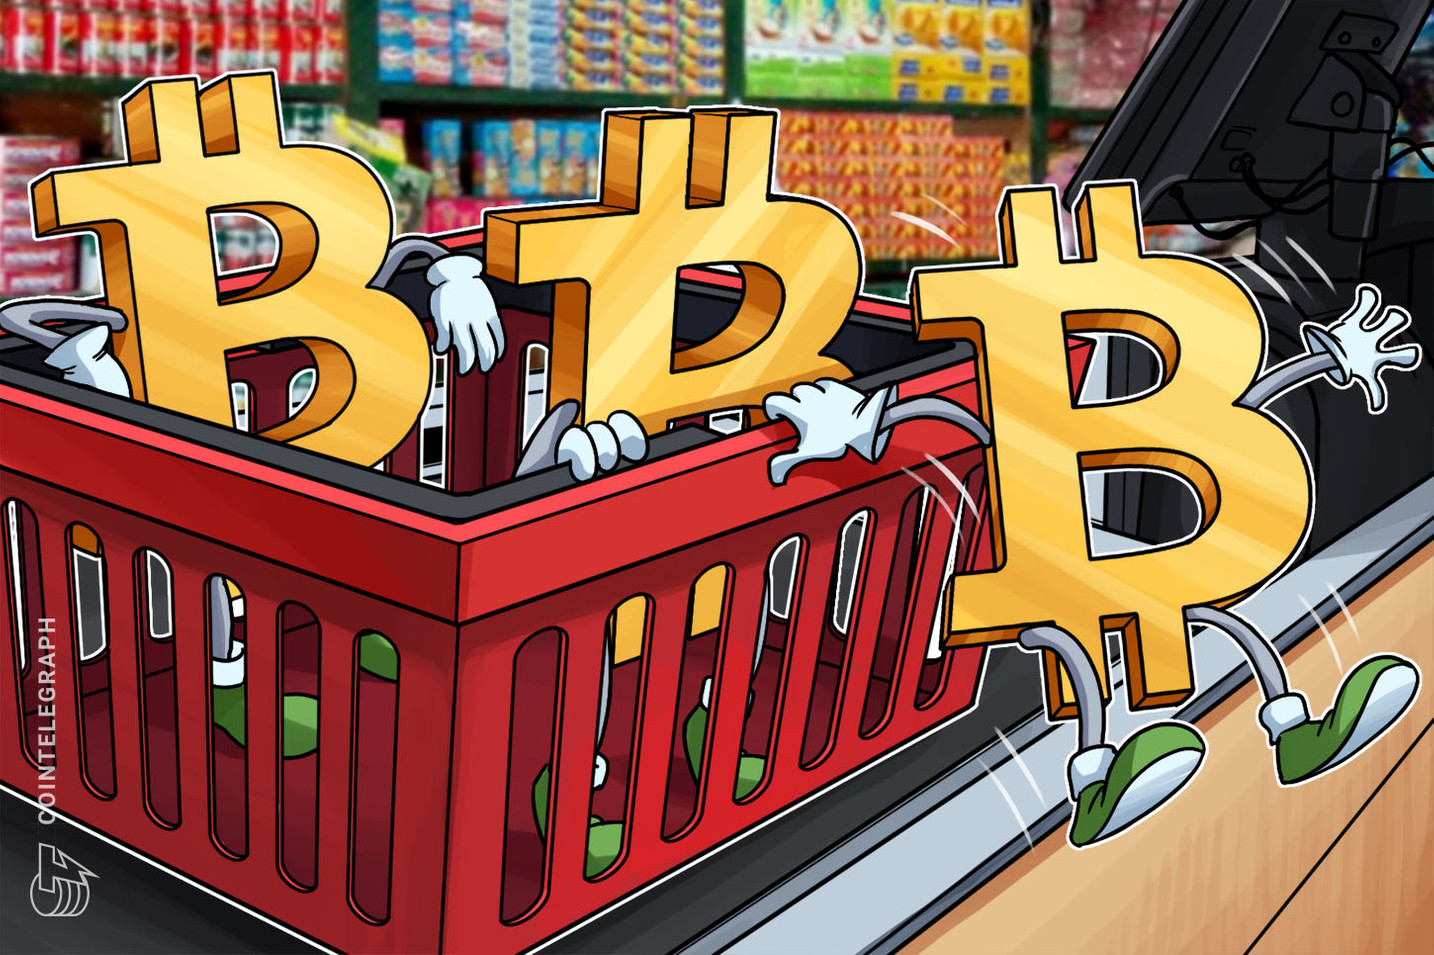 LibertyX Allows BTC Purchases in Cash at 7-Eleven, CVS, and Rite Aid